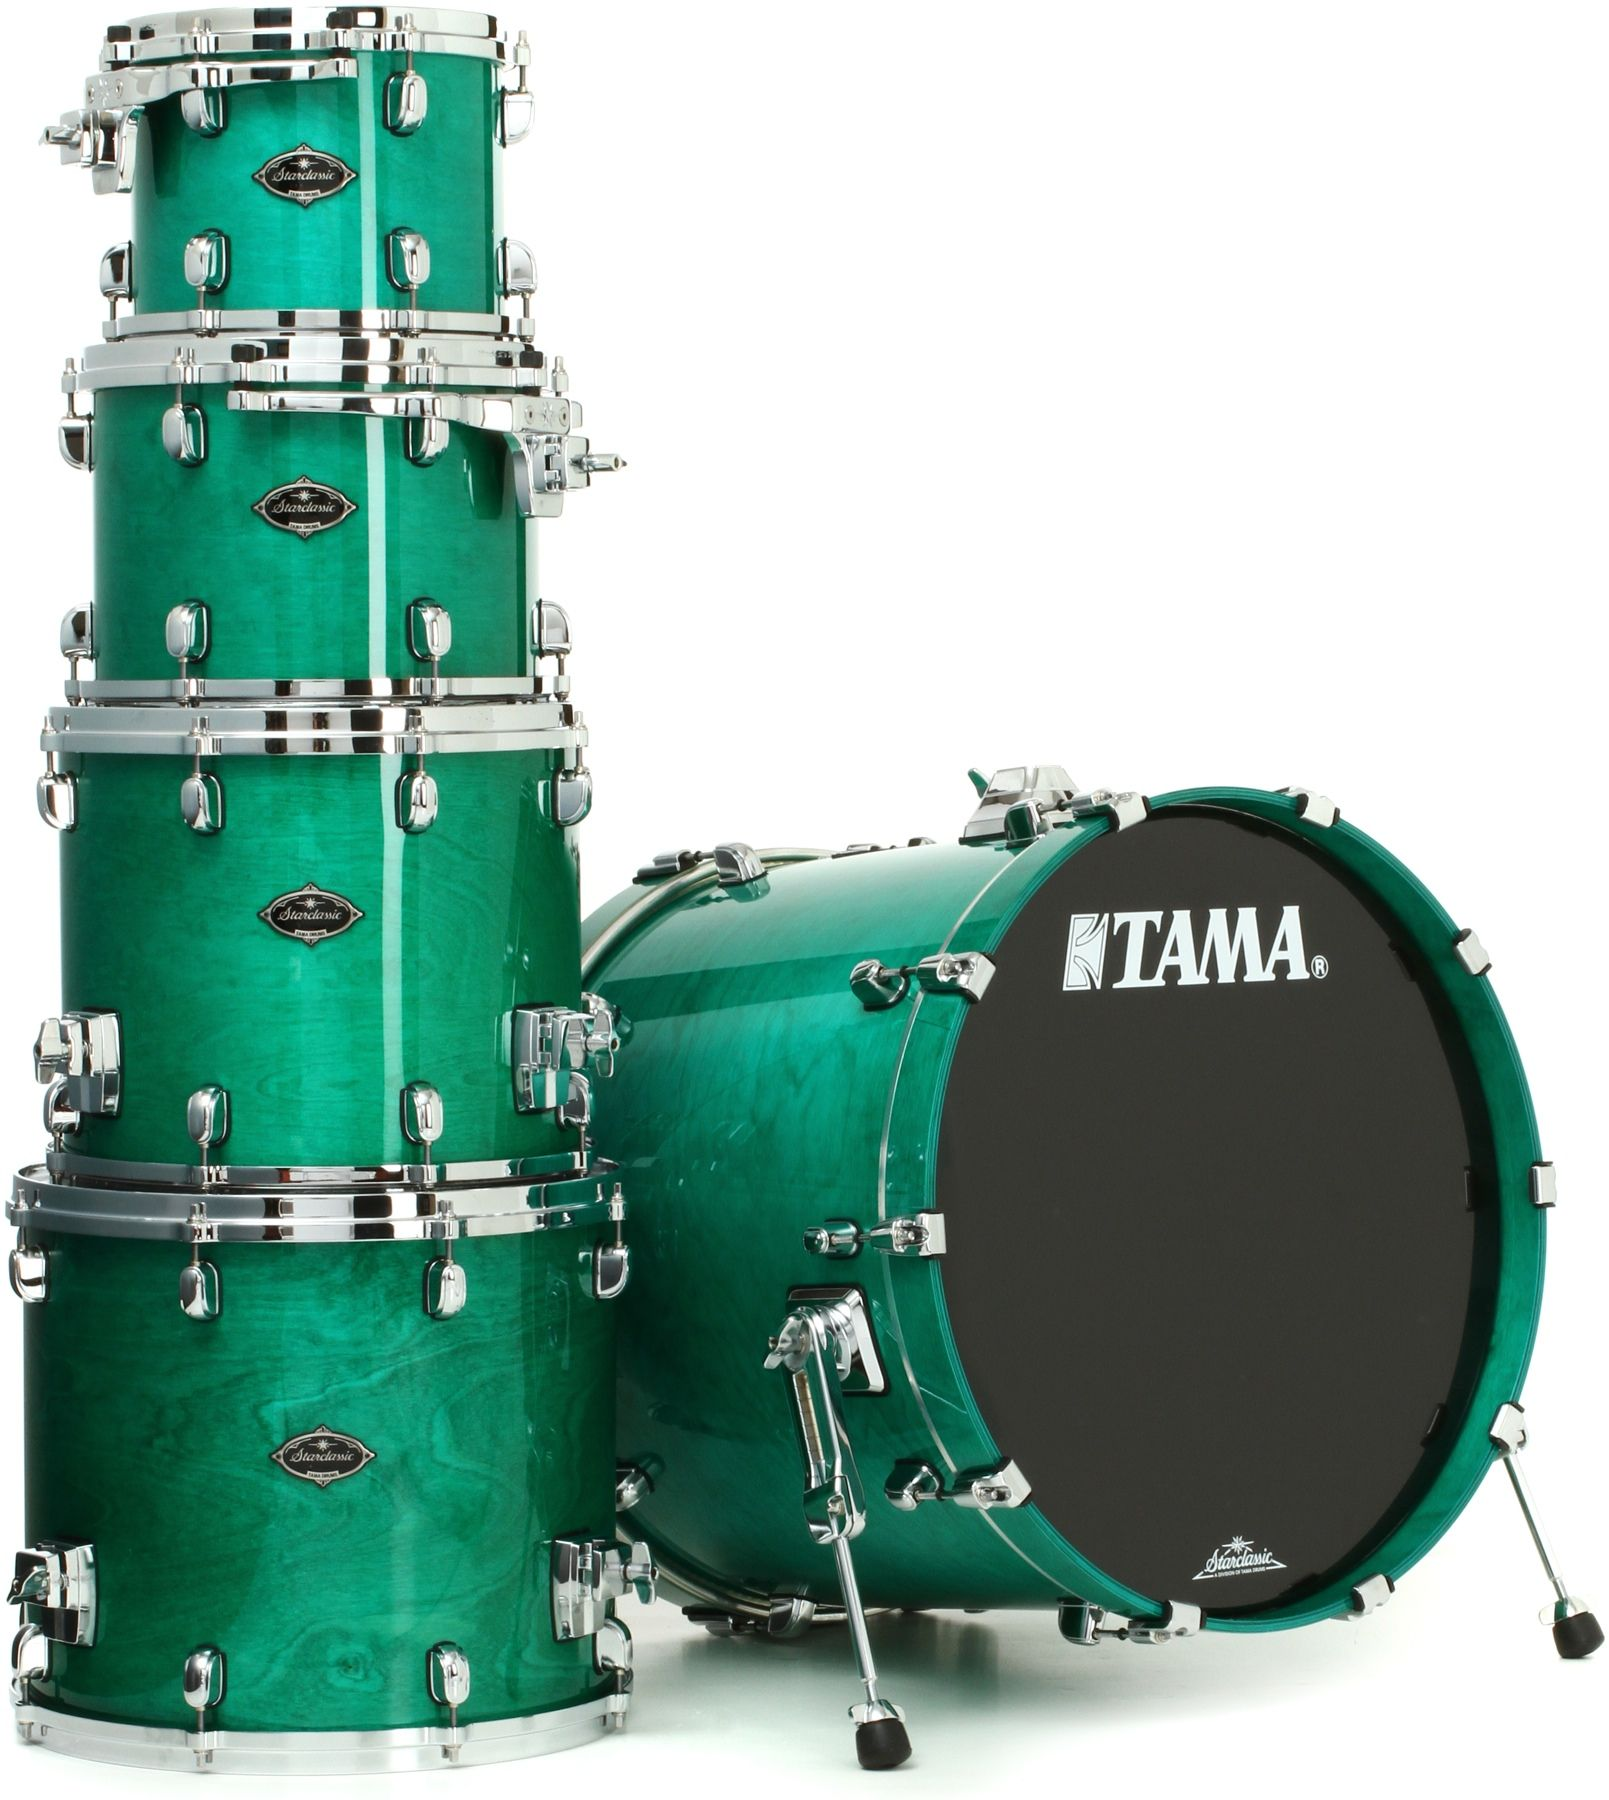 "Tama Starclassic Performer B/B Shell Pack - 5-Piece Vintage Aqua Marine | Sweetwater.com | 5-piece Birch and Bubinga Shell Pack with 22"" Bass Drum, 10"" and 12"" Mounted Toms, 12"" and 16"" Floor Toms, and Star-Cast Double Tom Holder - Vintage Aqua Marine"